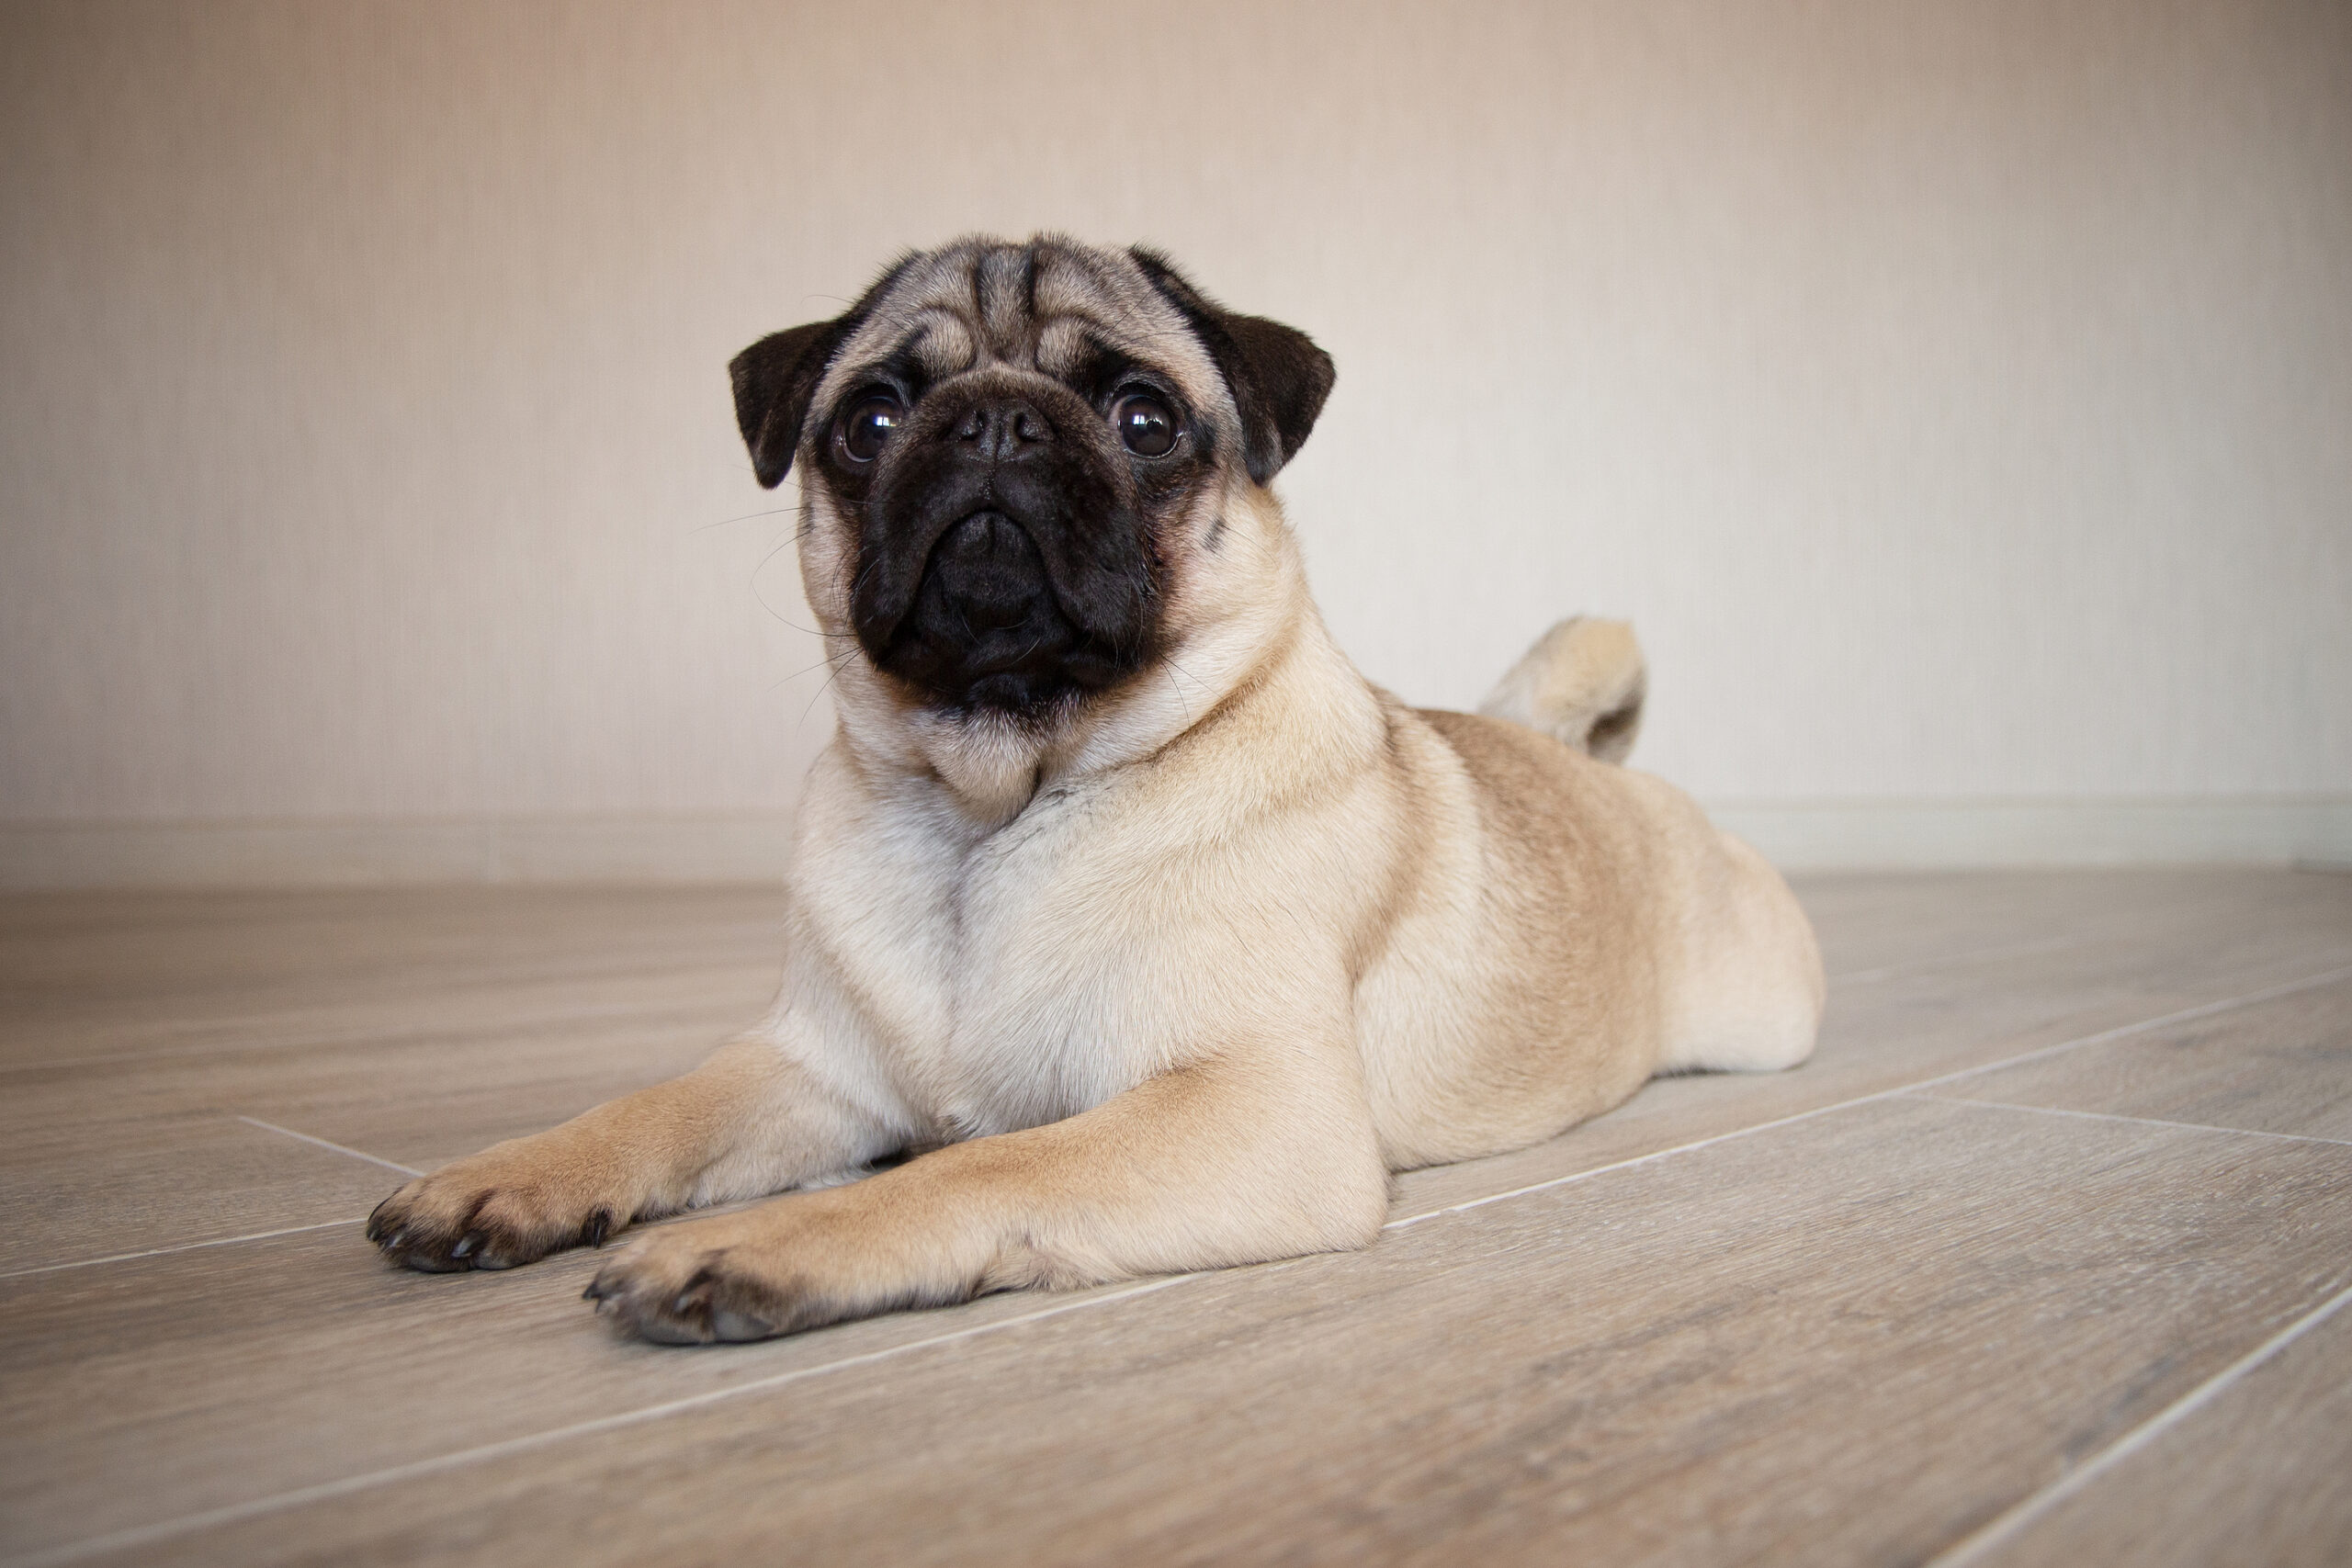 pug sitting on a floor